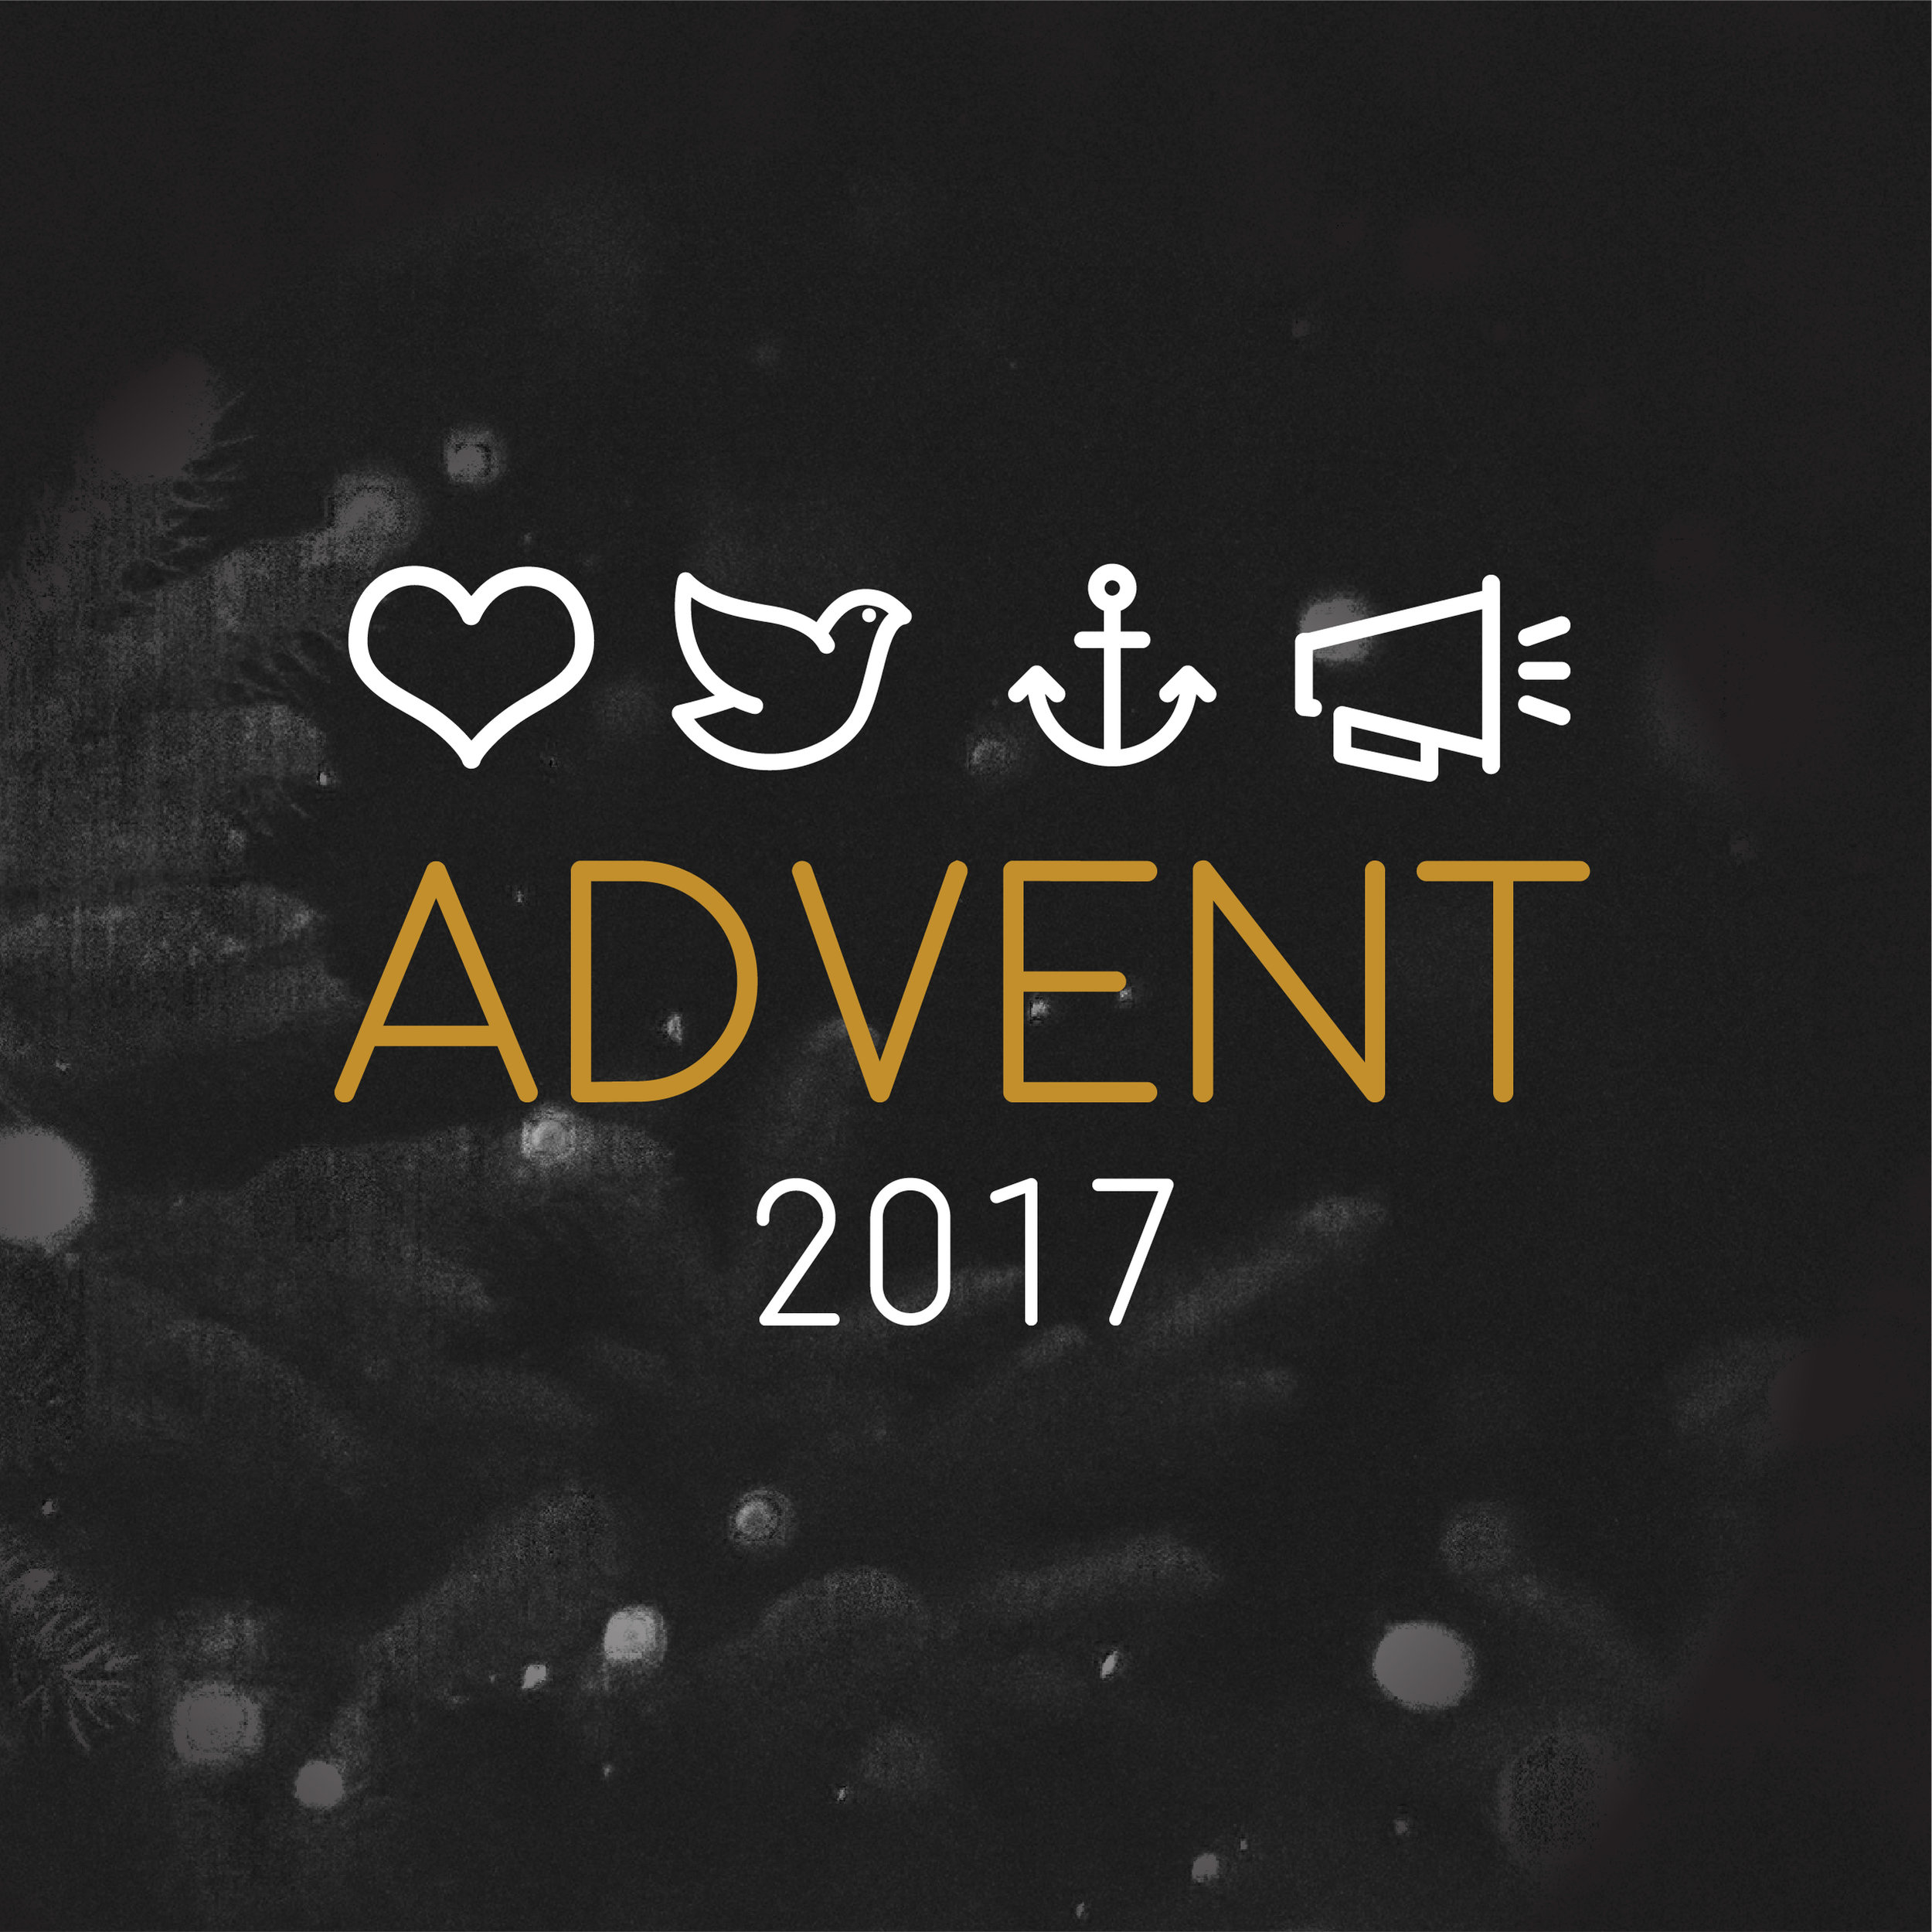 Advent_SERMONSERIES_Christmas2017-Merry Christmas (web) copy 2.jpg